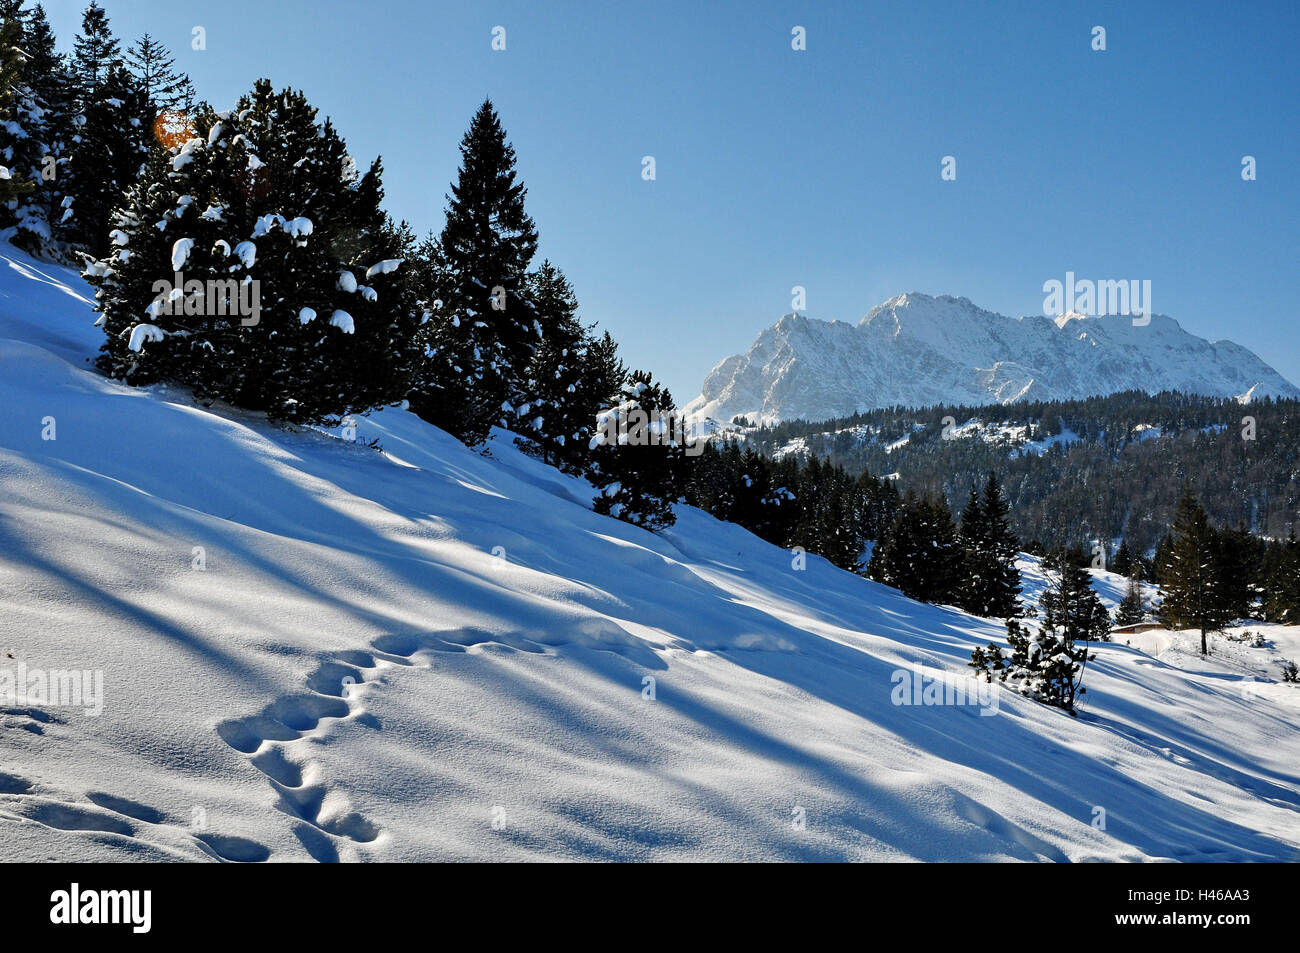 Winter, snow surface, winter wood, mountains, animal tracks, - Stock Image